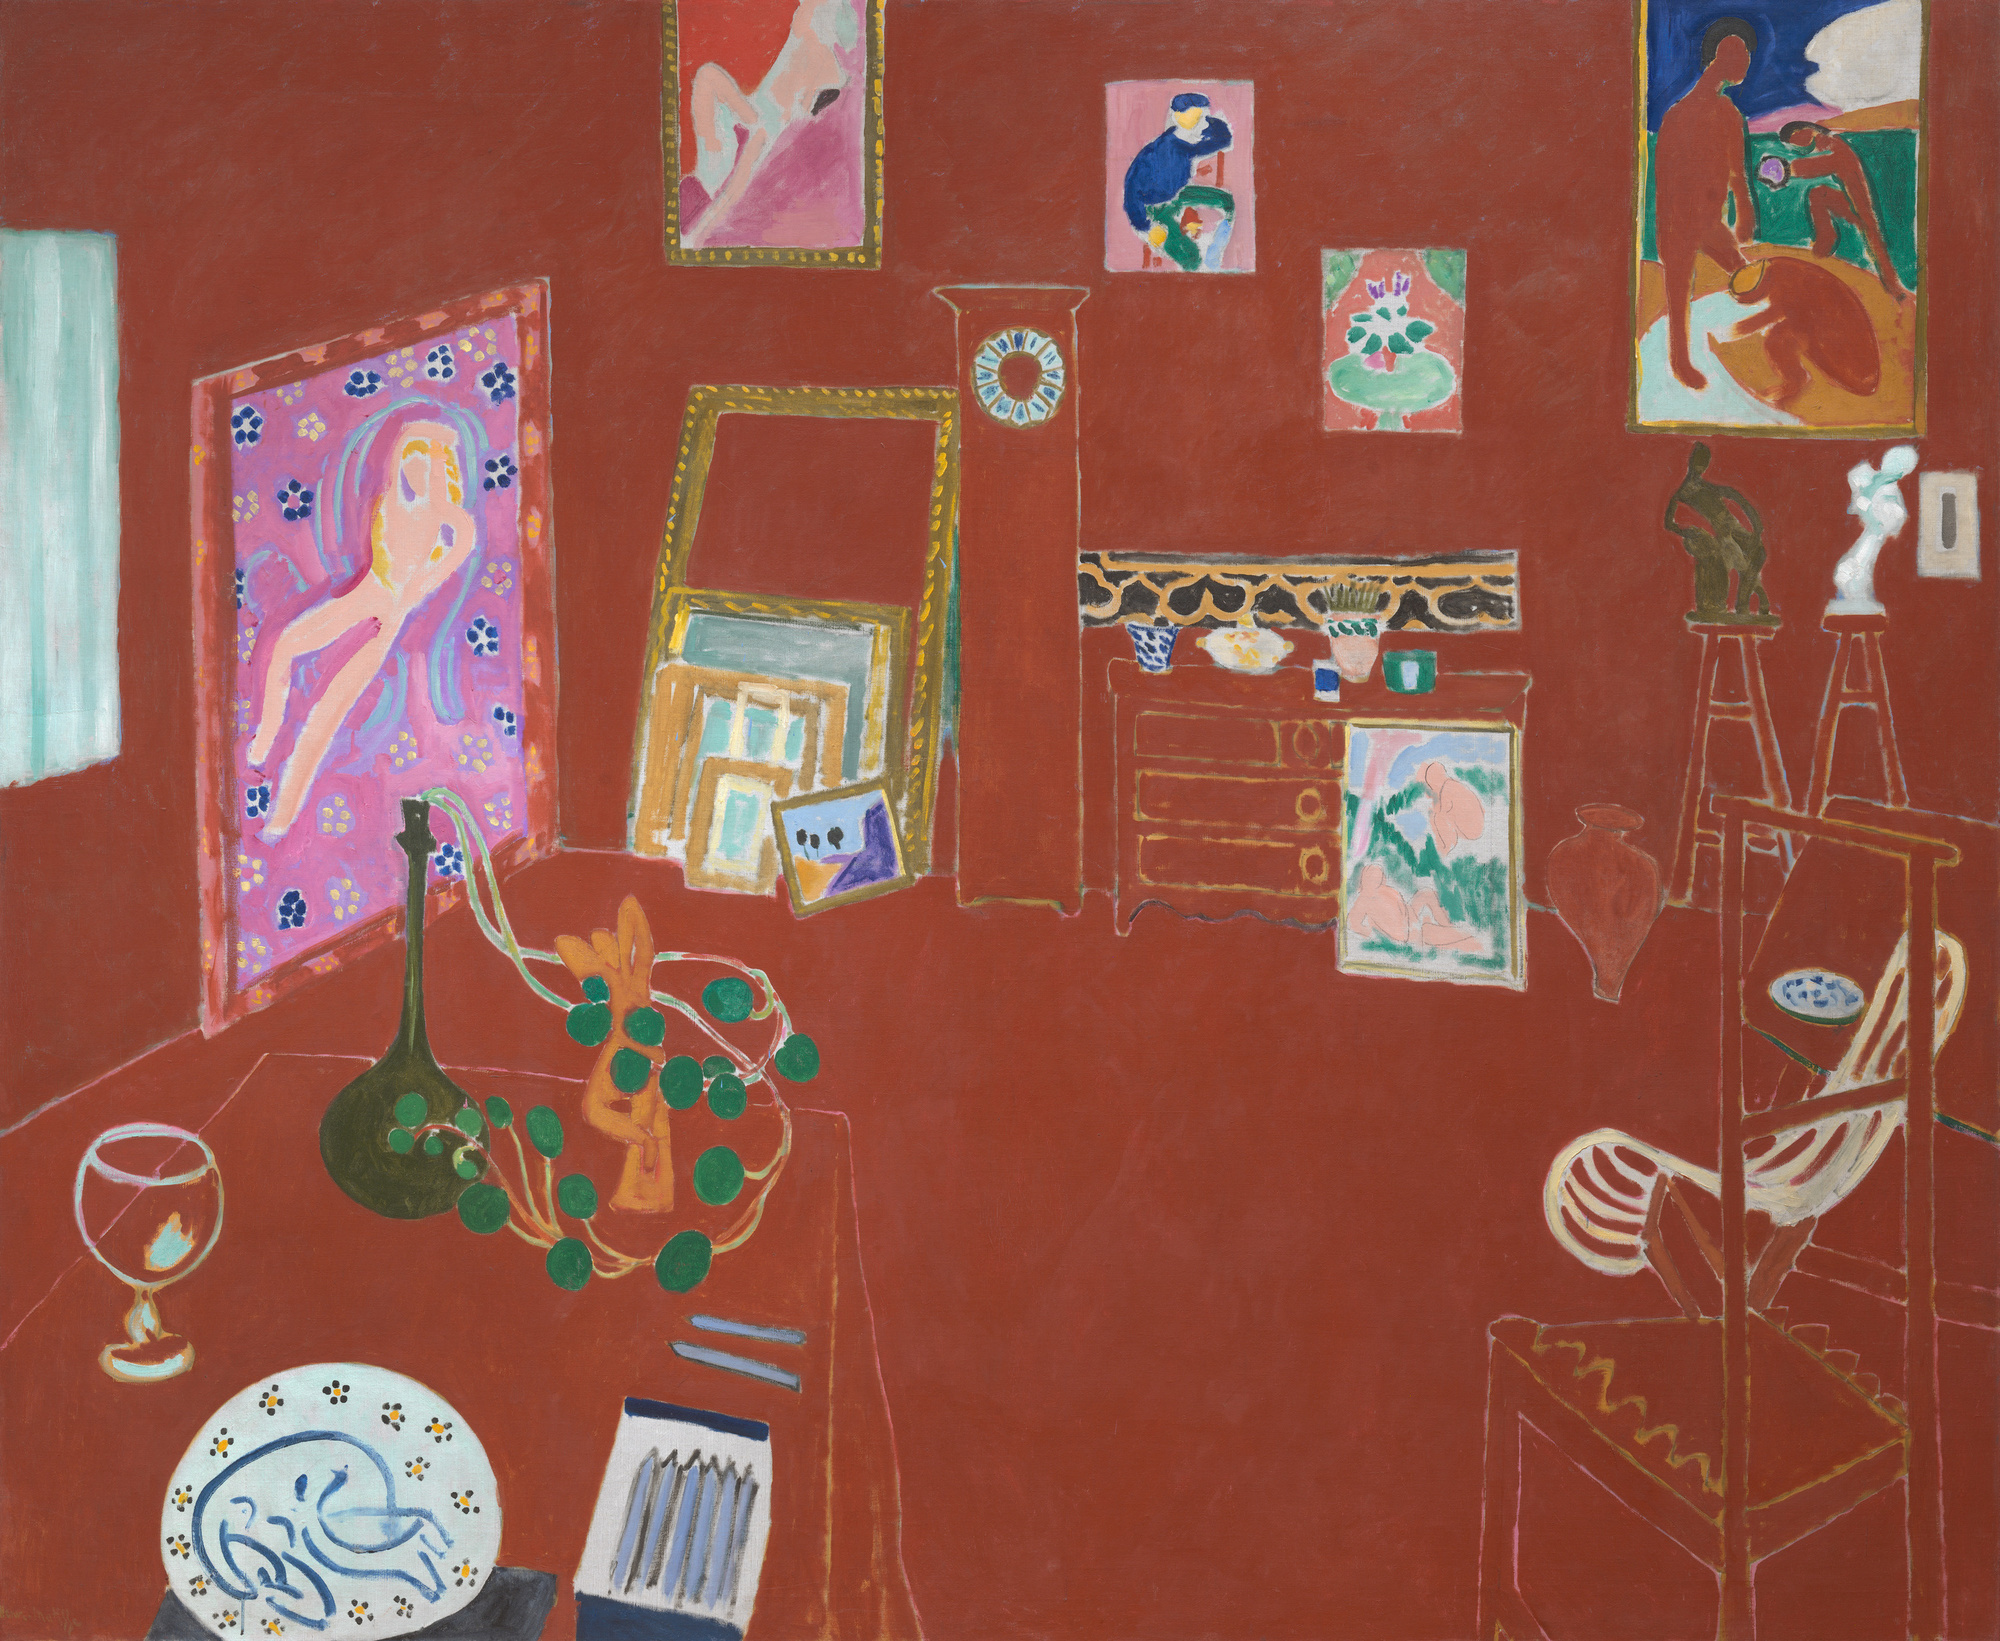 "Henri Matisse. The Red Studio. 1911. Oil on canvas, 71 1/4"" x 7' 2 1/4"" (181 x 219.1 cm). Mrs. Simon Guggenheim Fund. © 2018 Succession H. Matisse/Artists Rights Society (ARS), New York"